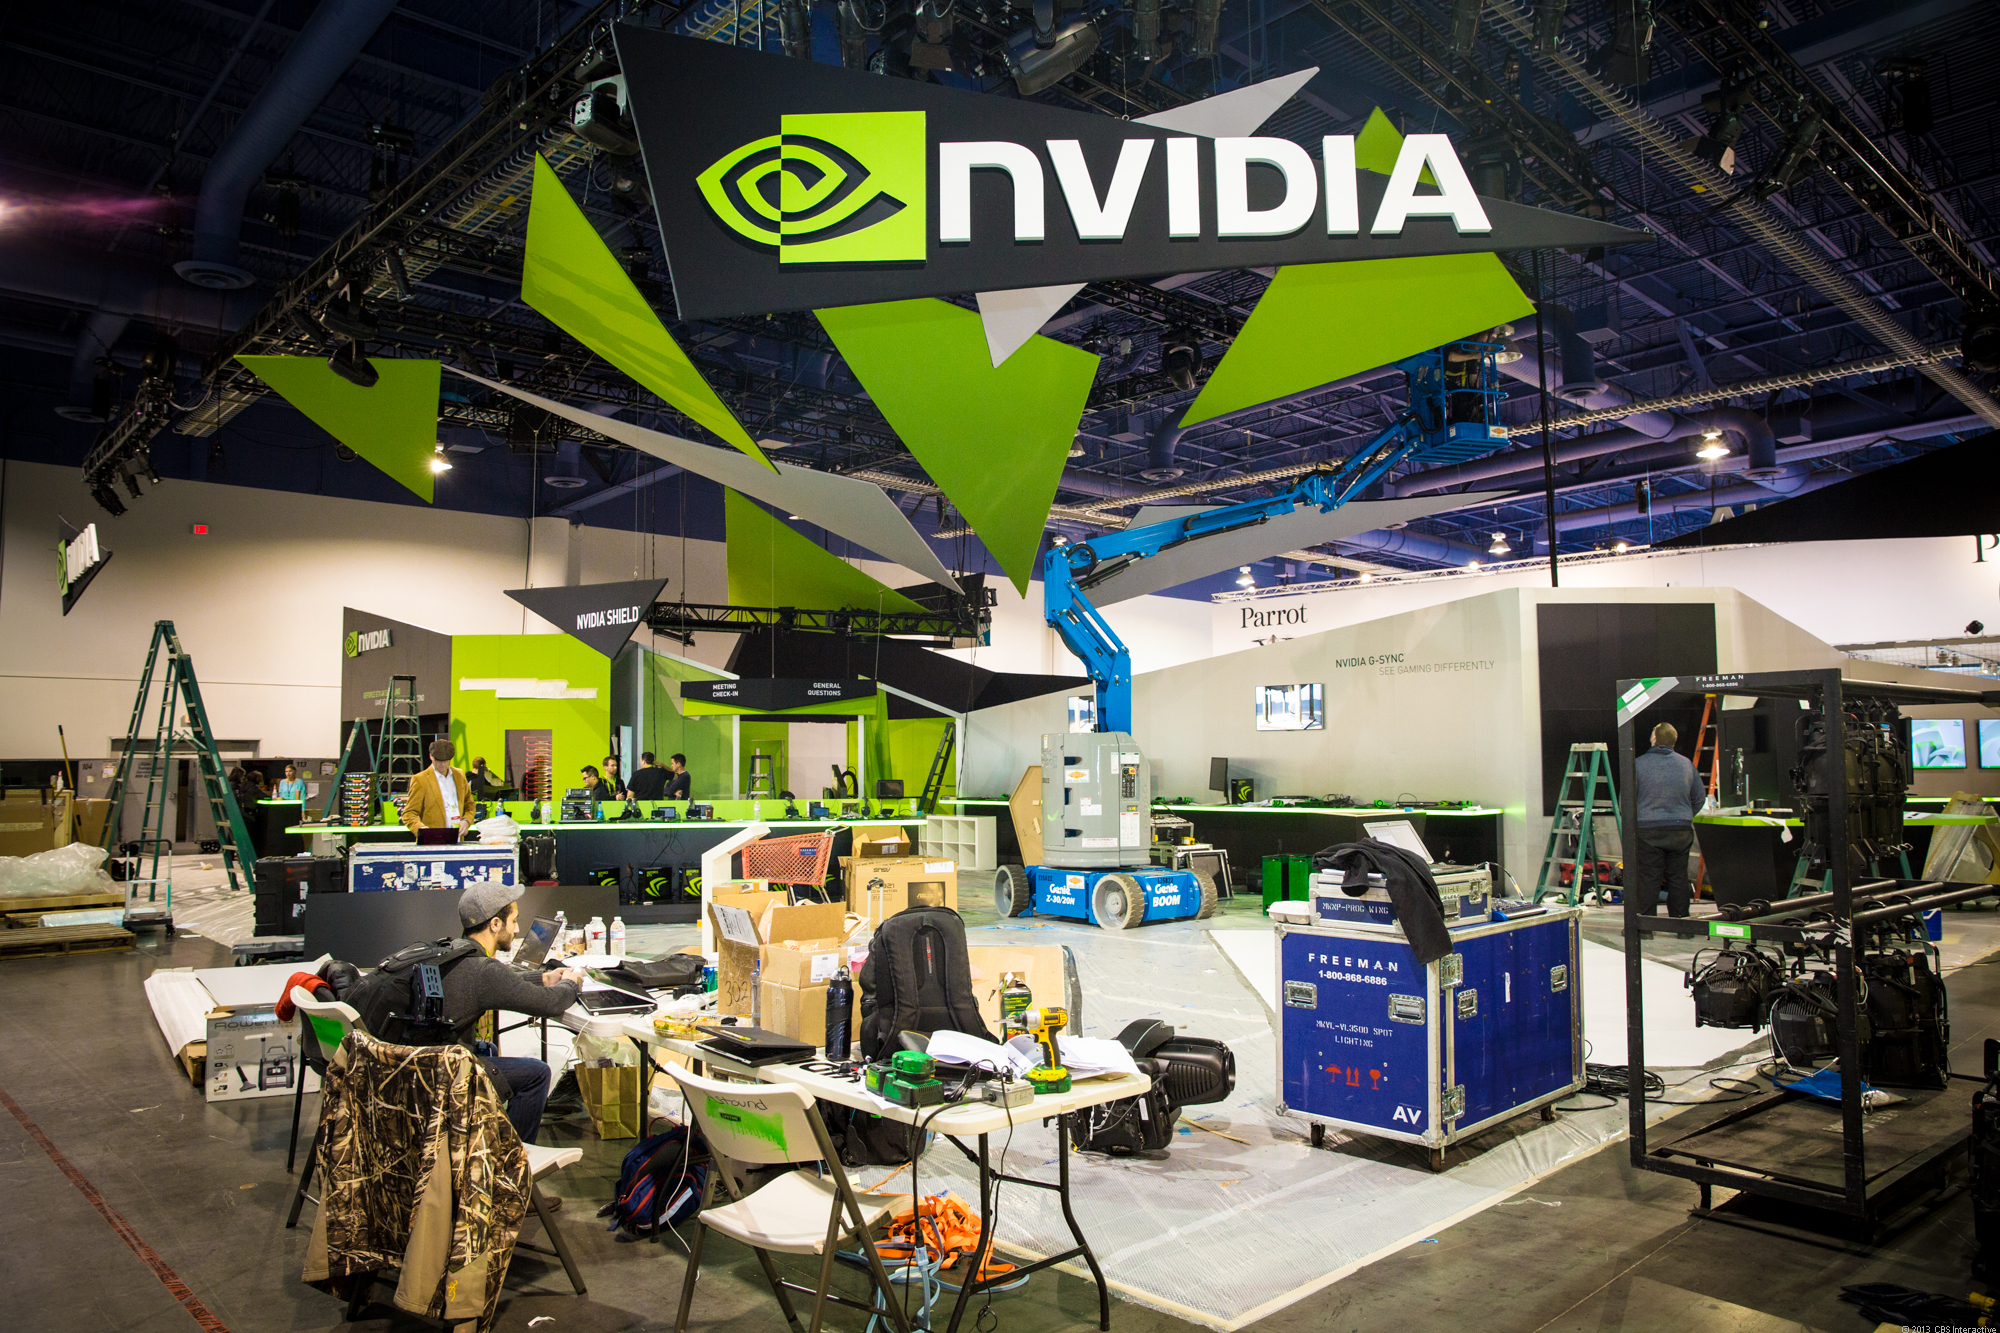 Nvidia booth getting set for CES